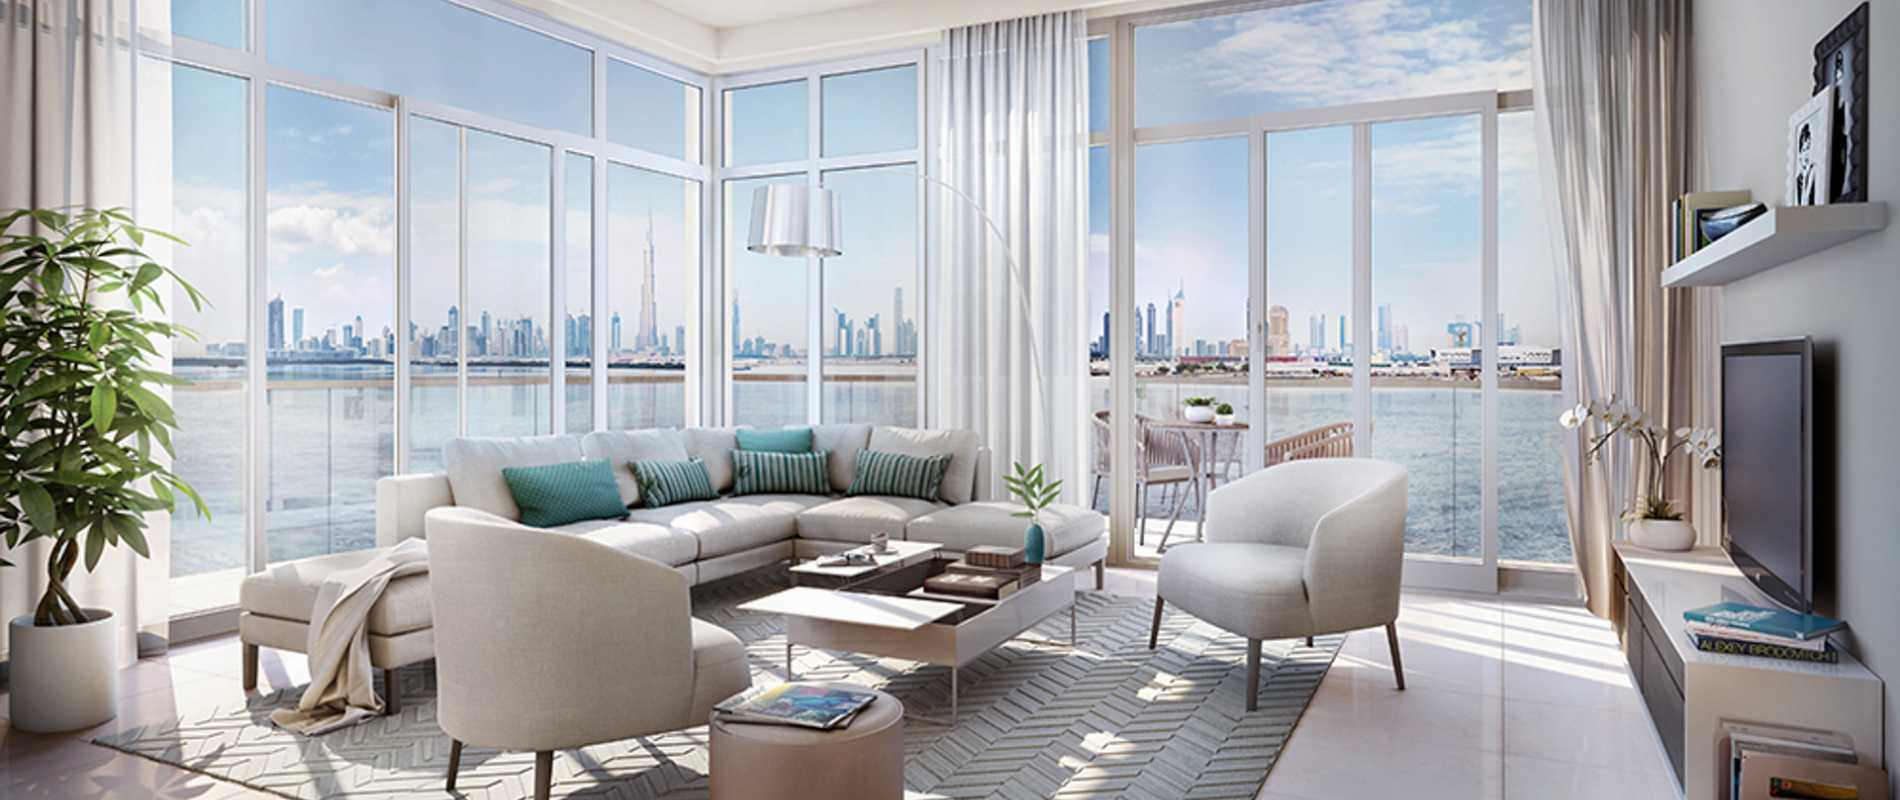 Luxury Property Dubai 3 Bedroom Apartment for sale in The Cove Dubai Creek Harbour